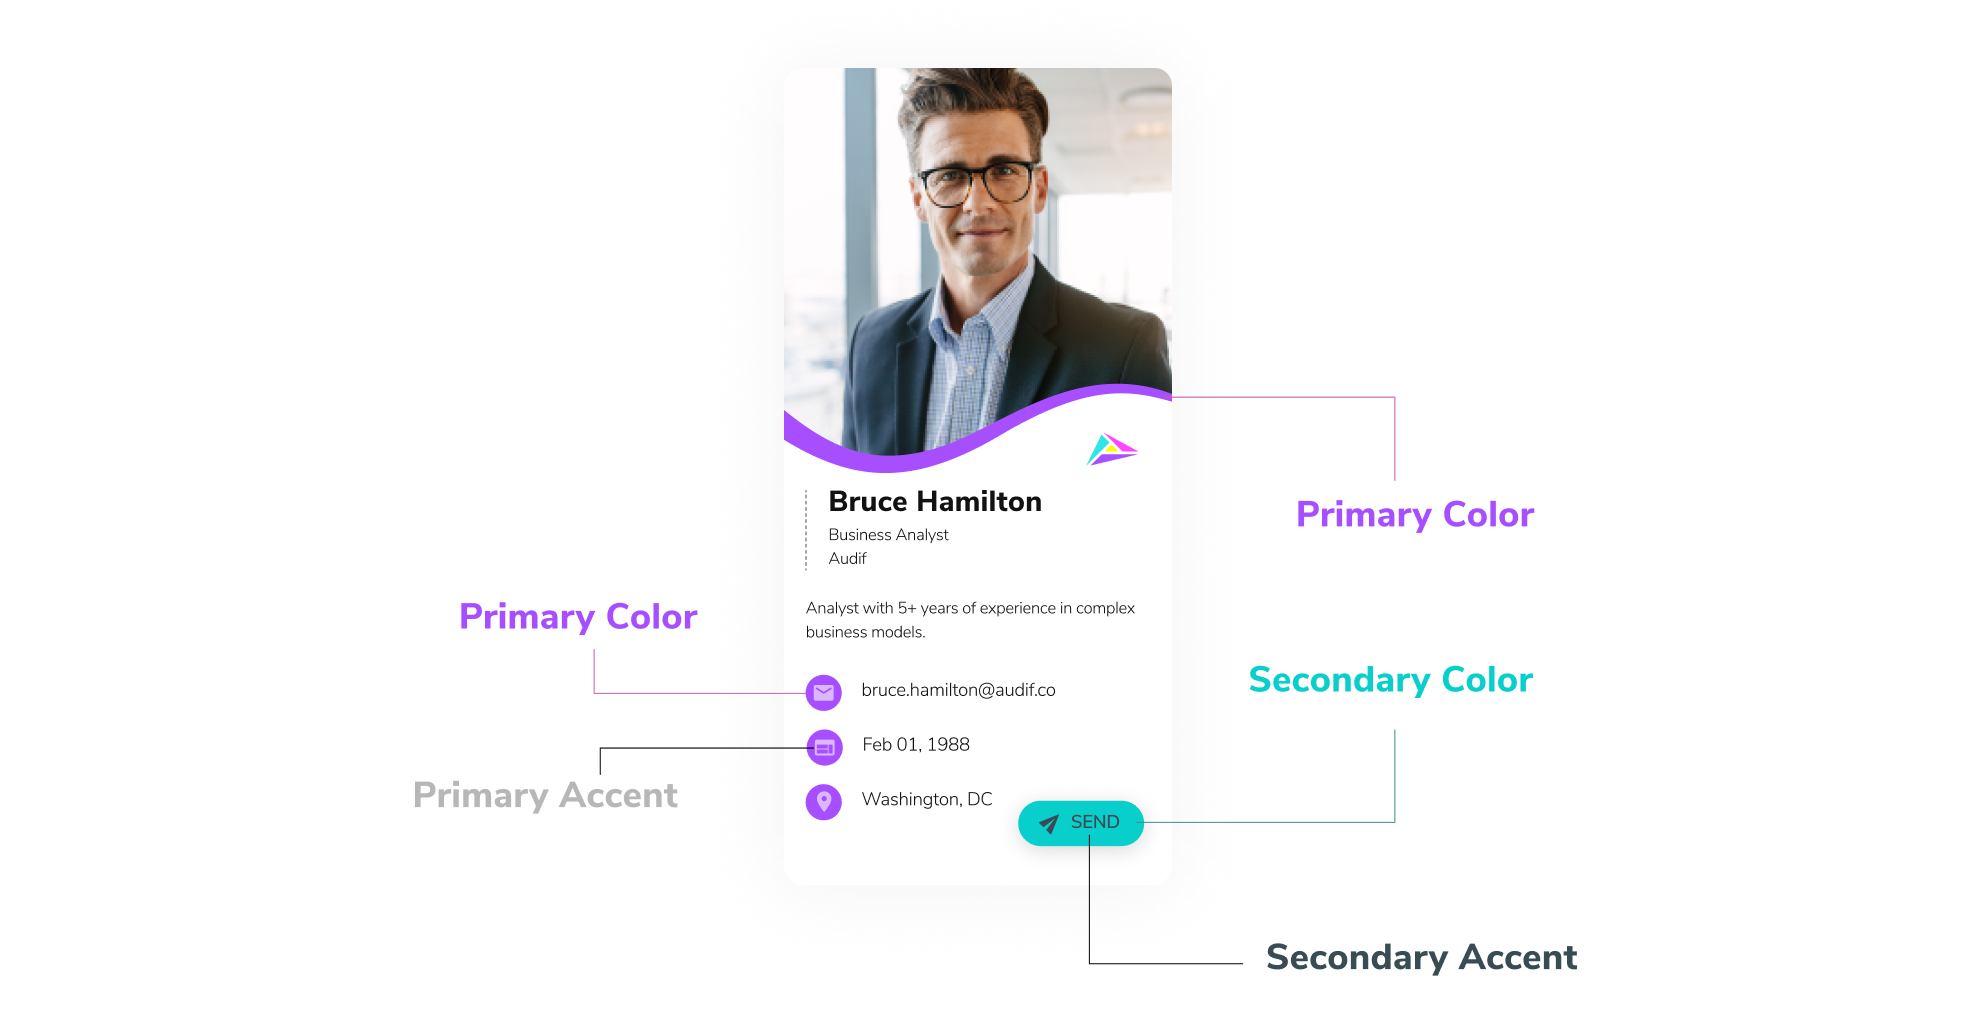 With HiHello Basic and HiHello Professional you can customize the colors on your digital business card.